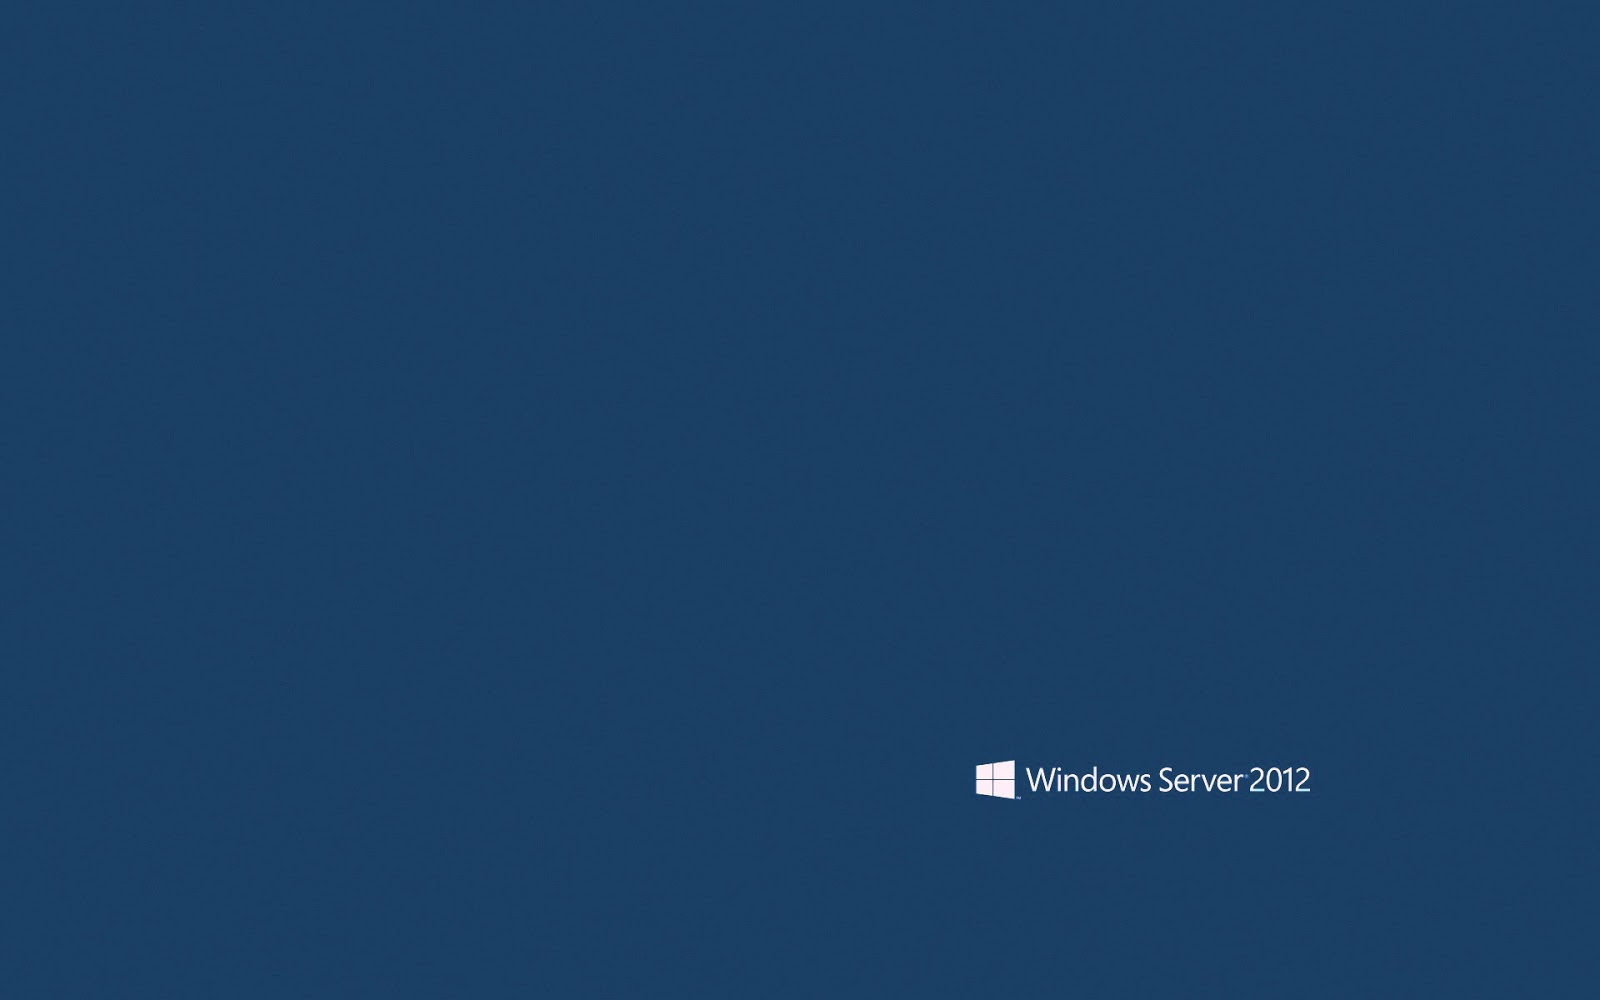 windows server 2012 r2 wallpaper - wallpapersafari